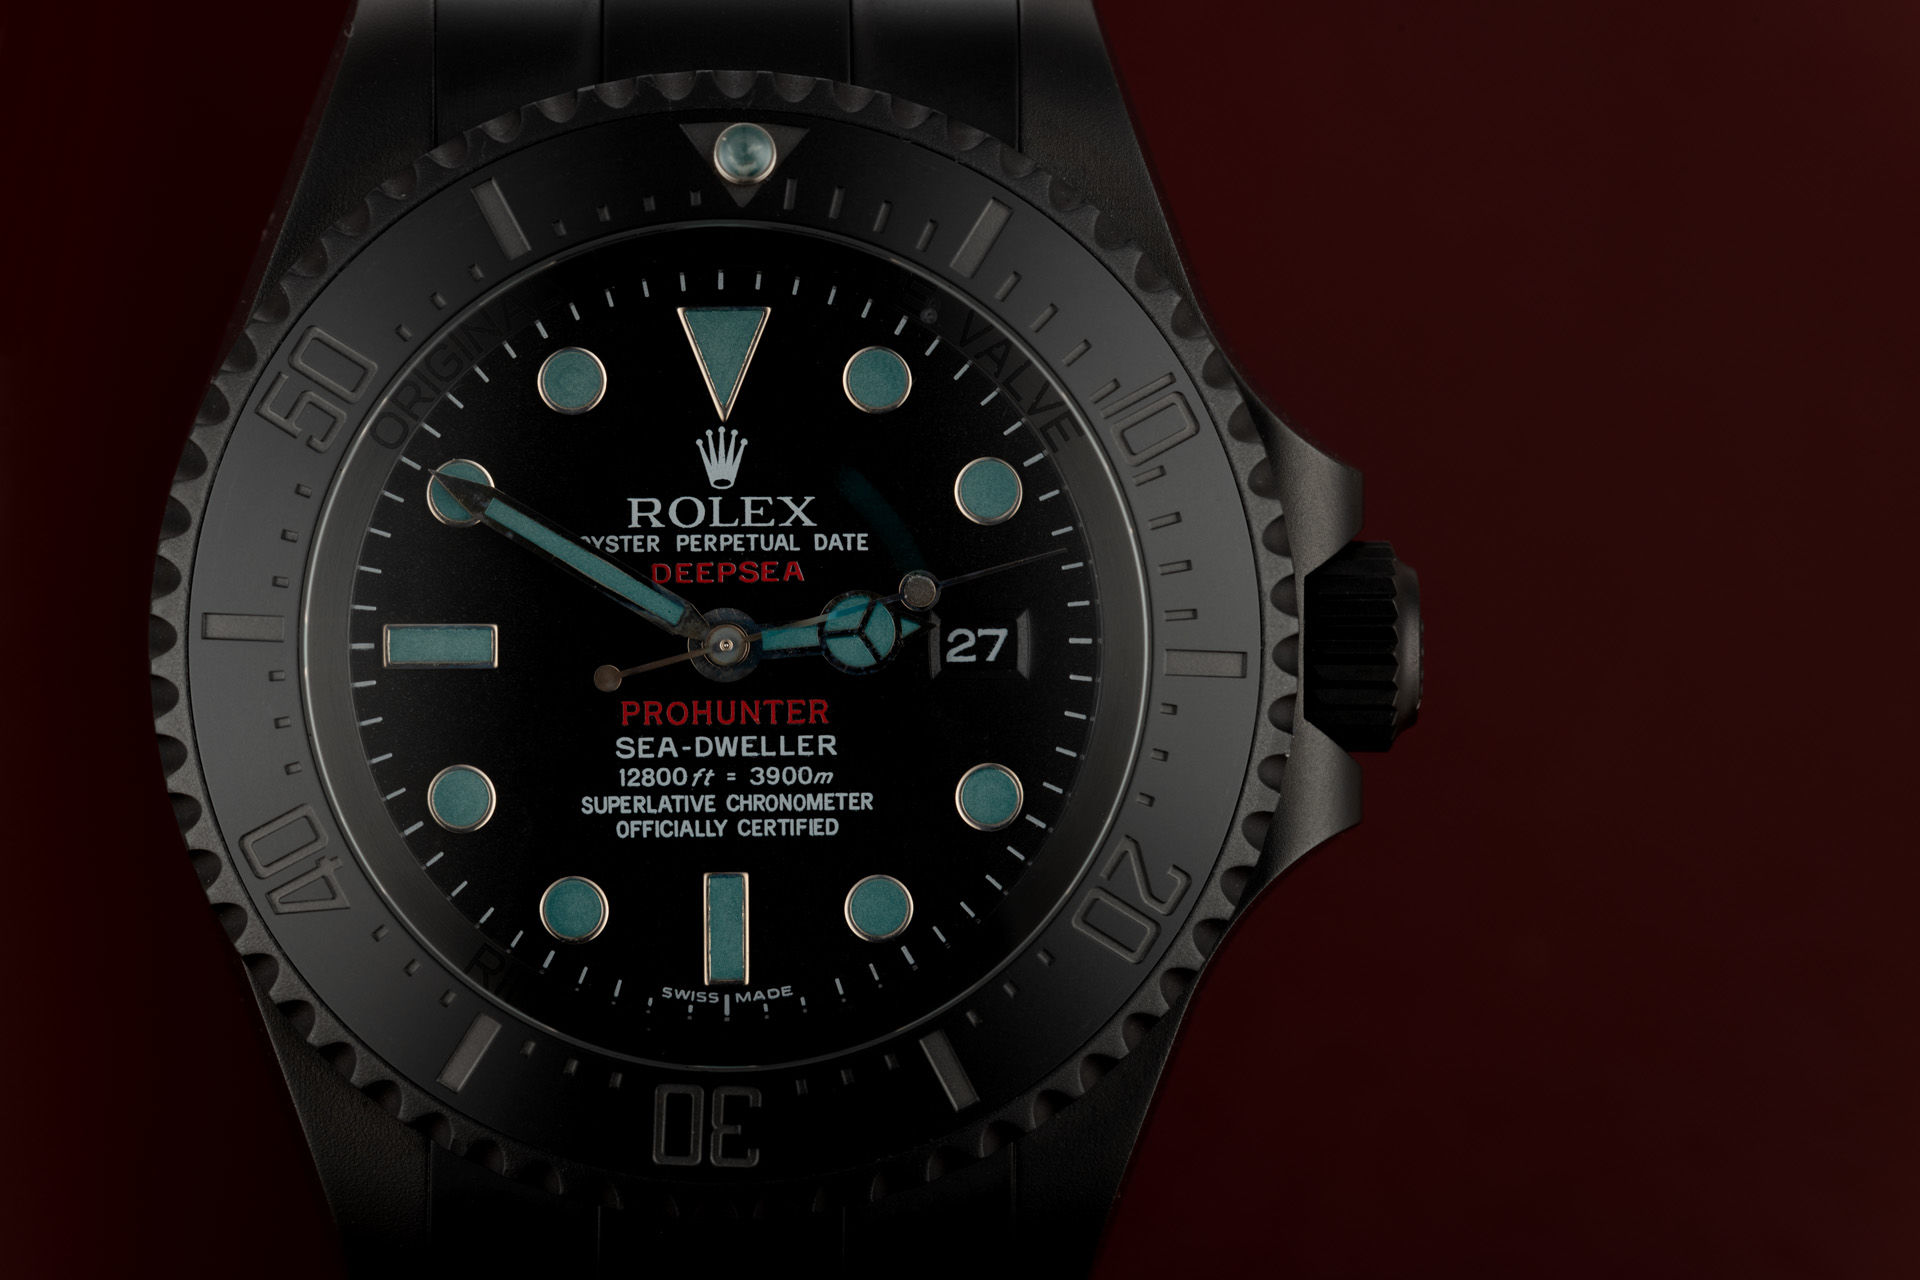 One of 100 | ref 126660 | Pro Hunter Sea-Dweller Deepsea Phantom